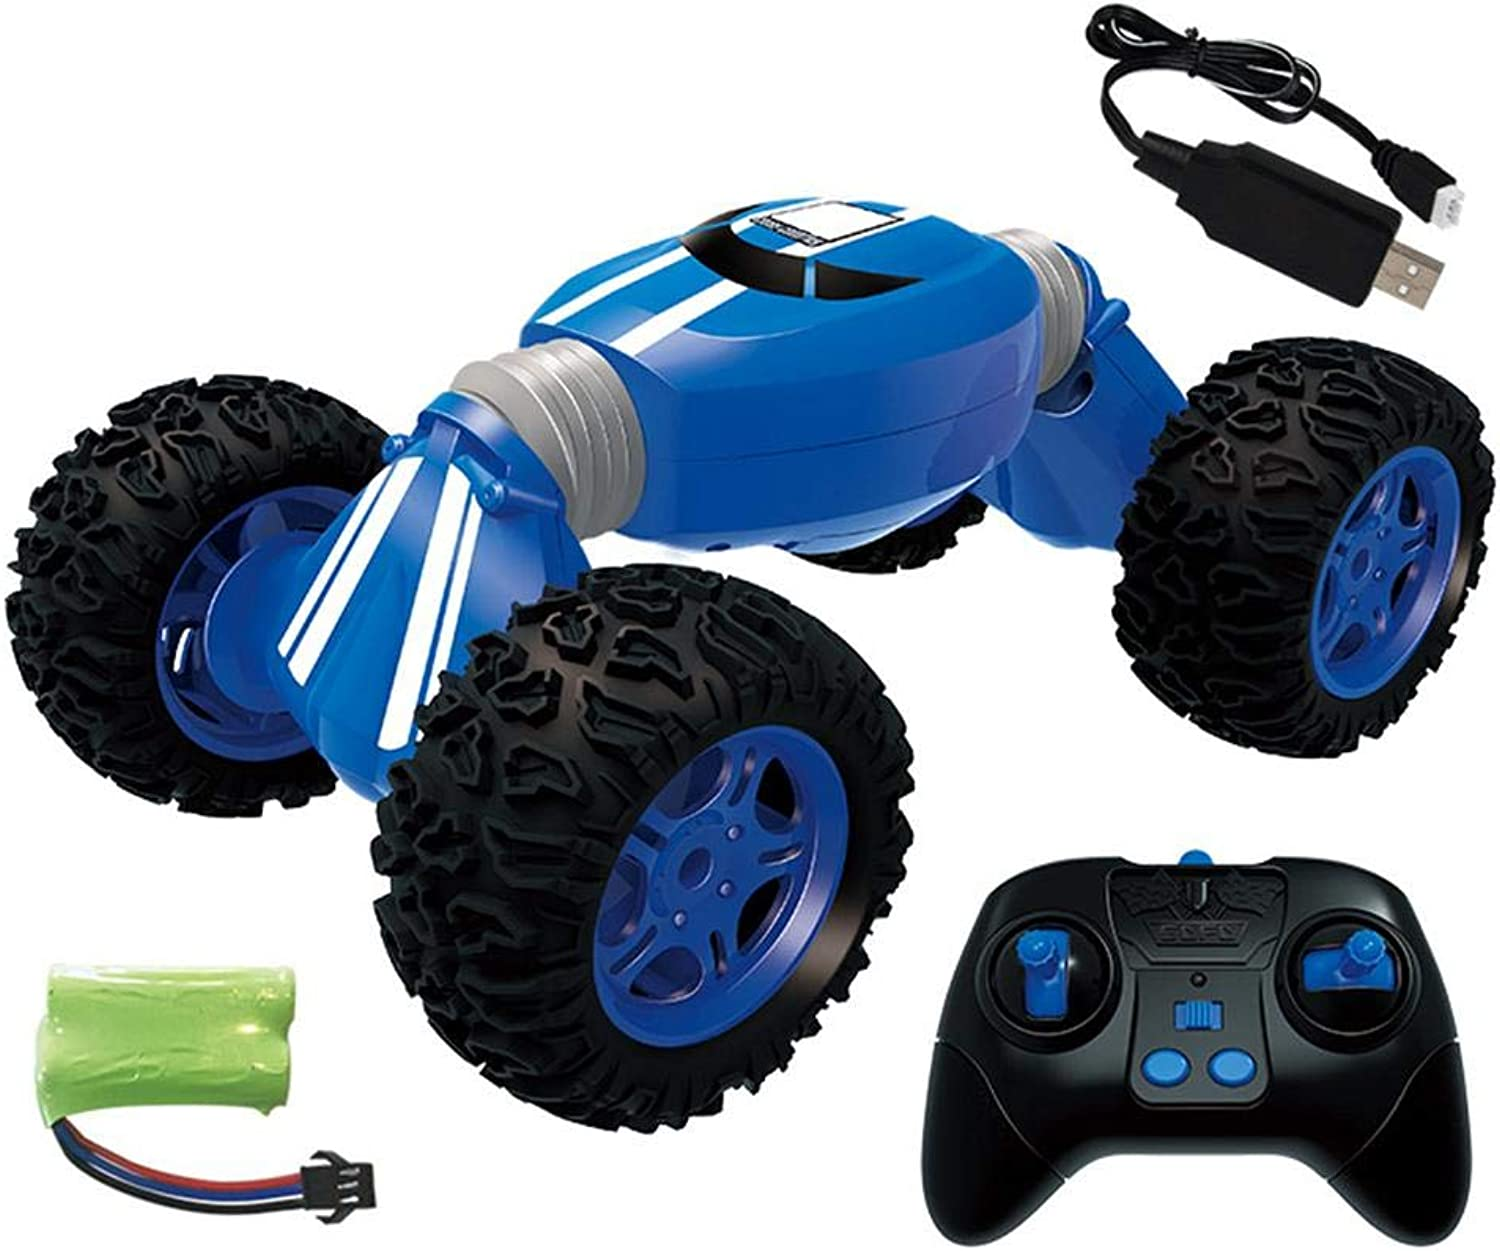 Luckycyc 2.4G Charging RC Stunt Car  Tipping Remote Control Car Offroad Stunt Torque Charging Fourwheel Drive Climbing Car, Reverse High Speed Deformation.